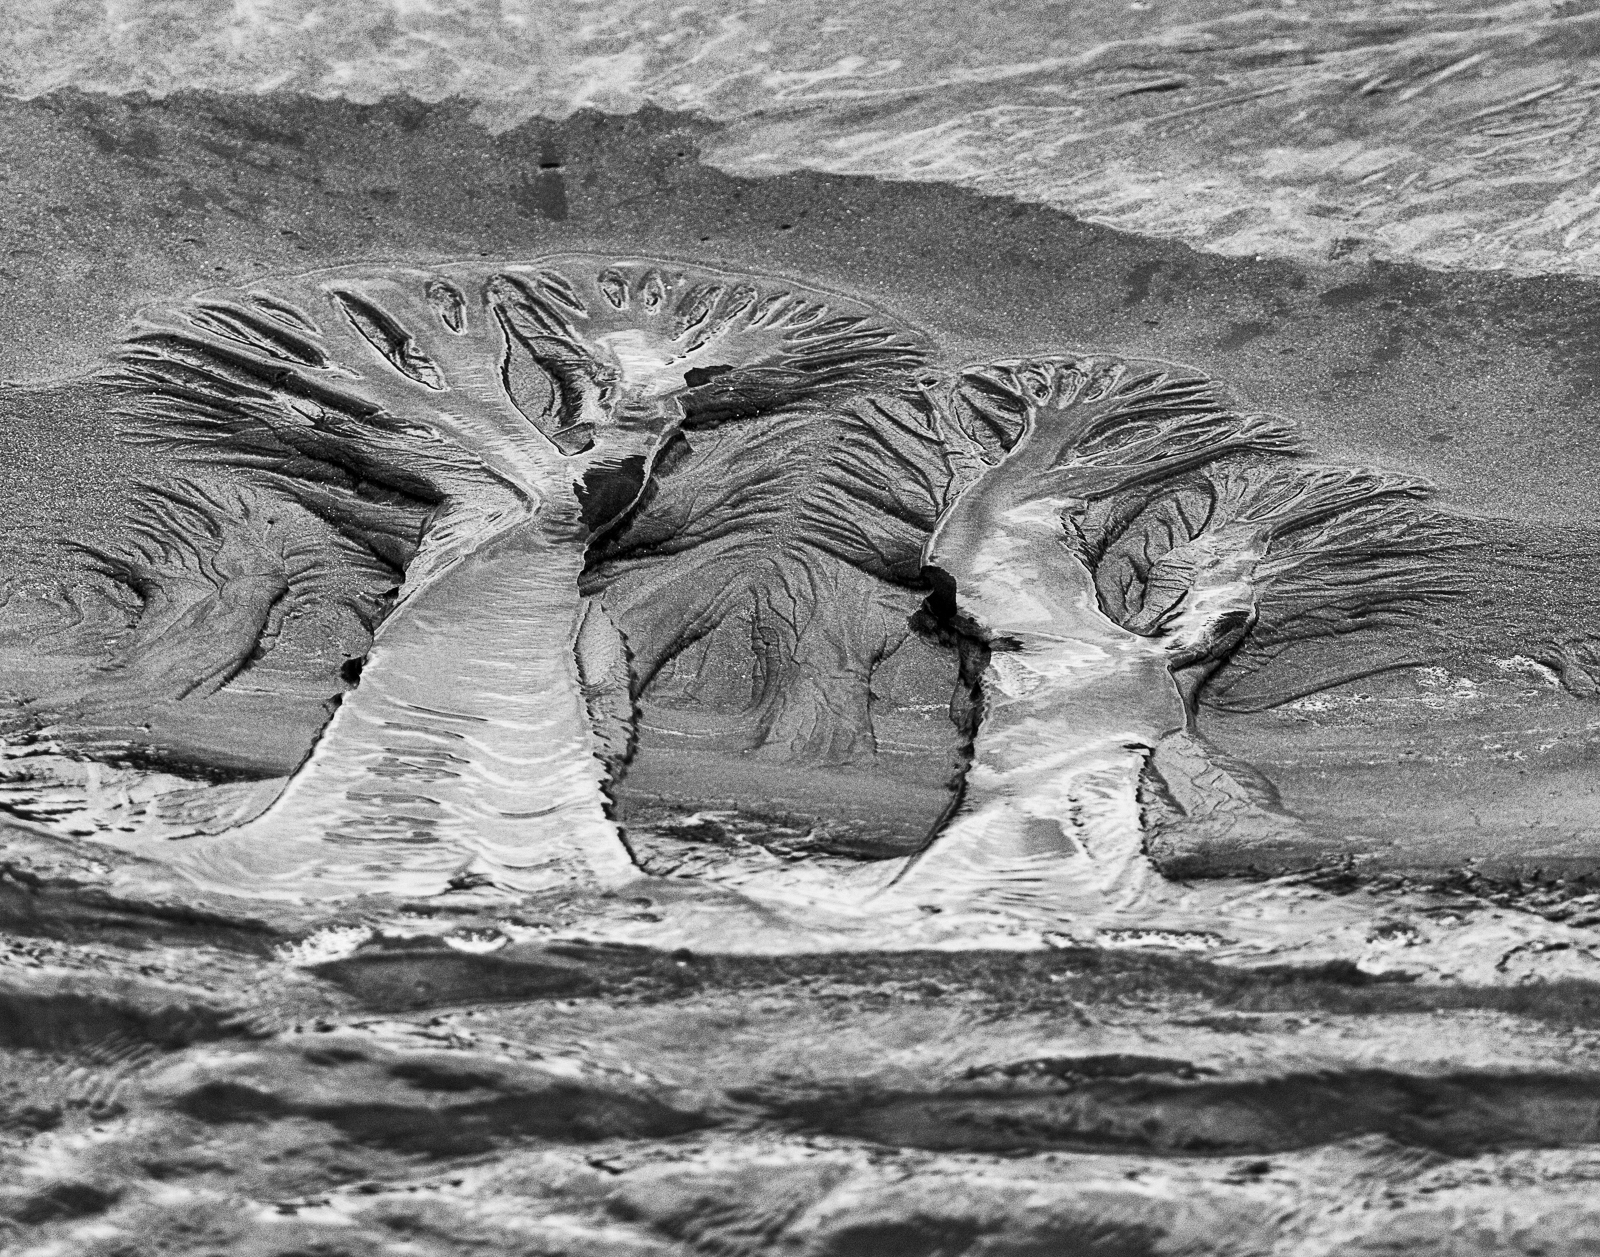 """HONORABLE MENTION Amateur category: Sand Trail by Patricia Schaefer; """"This is a capture of a very small  sand trail left as the tide receded. The image was taken at Seabrook Island on Augst 28, 2015 around noon. The viewer can decide what they see in the image."""""""